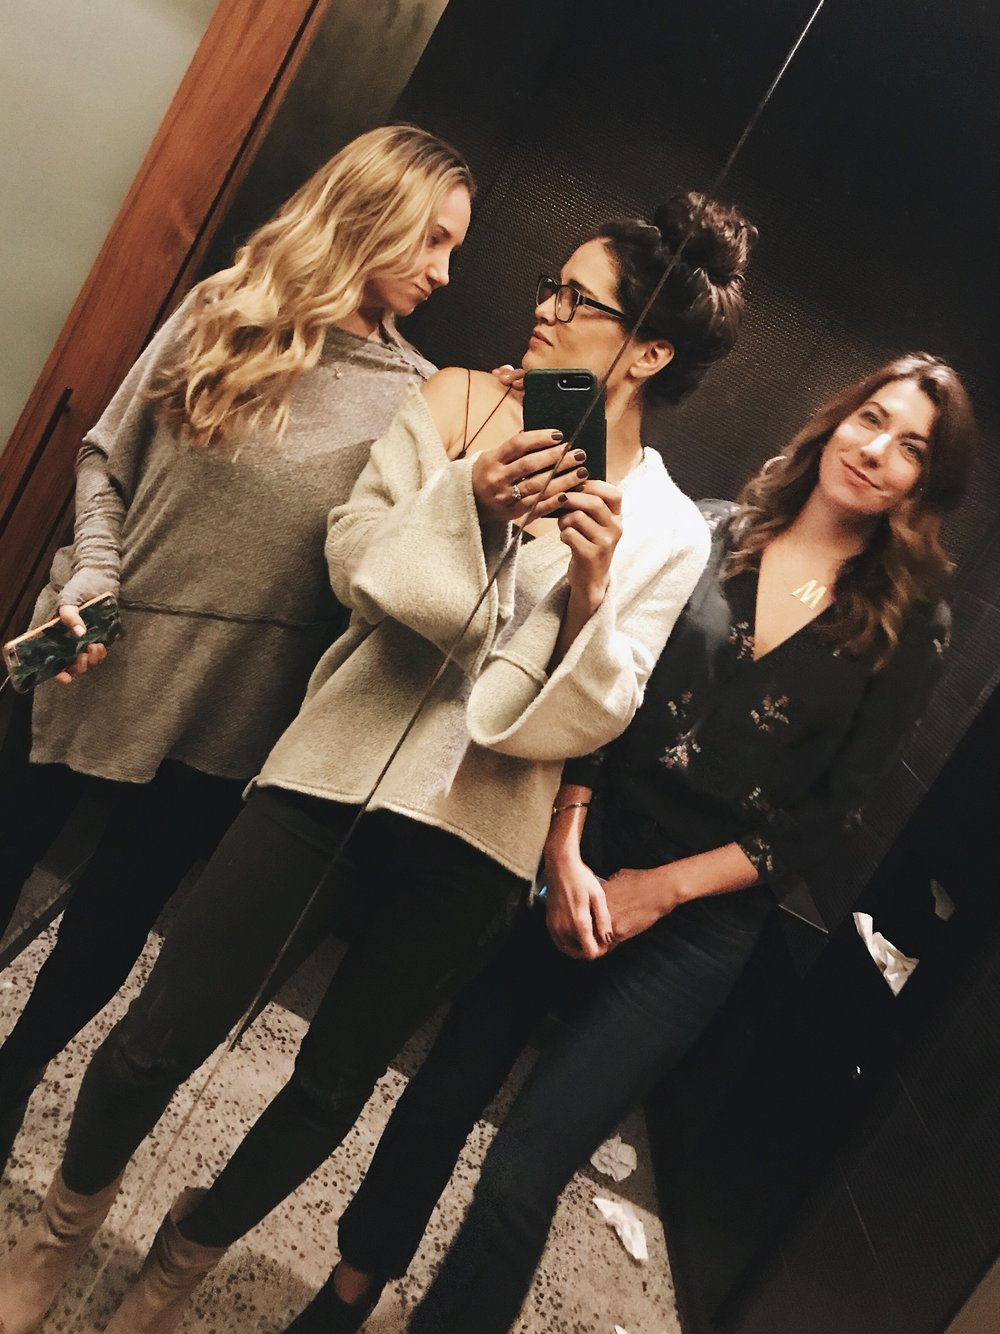 Bathroom selfies with @leahlaniskincare & @maisonpur